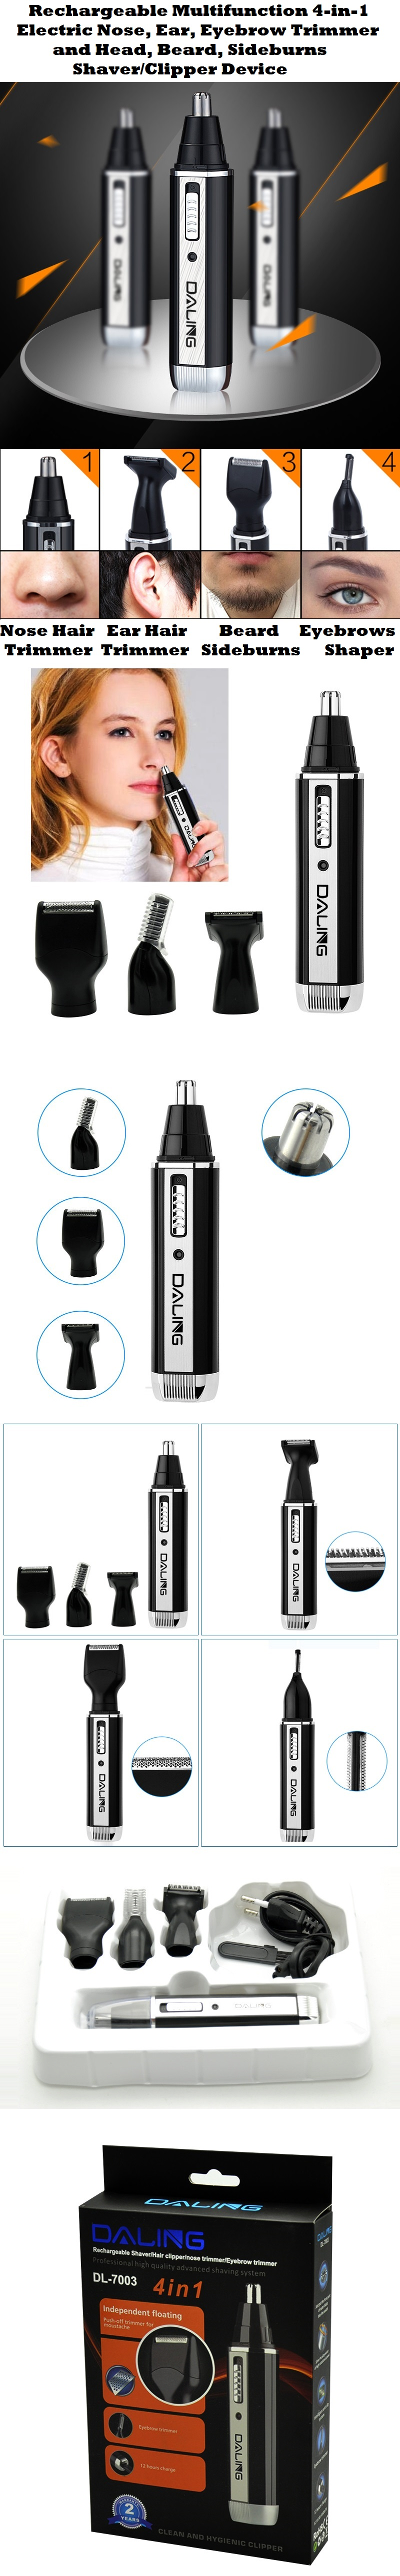 Rechargeable Multifunction 4in1 Electric Nose Hair Trimmer + More